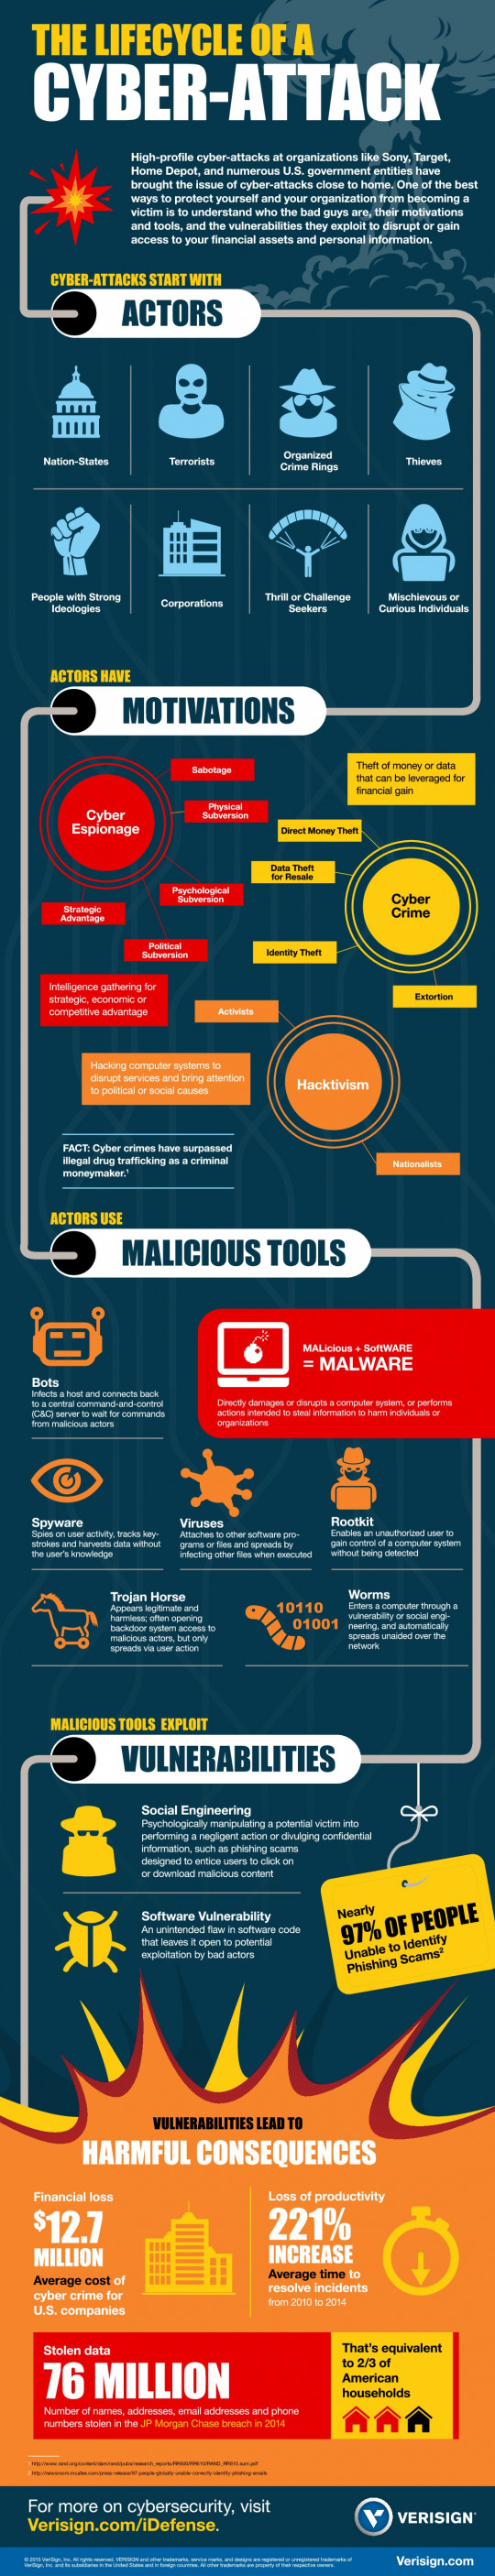 The Lifecycle of a Cyber-Attack